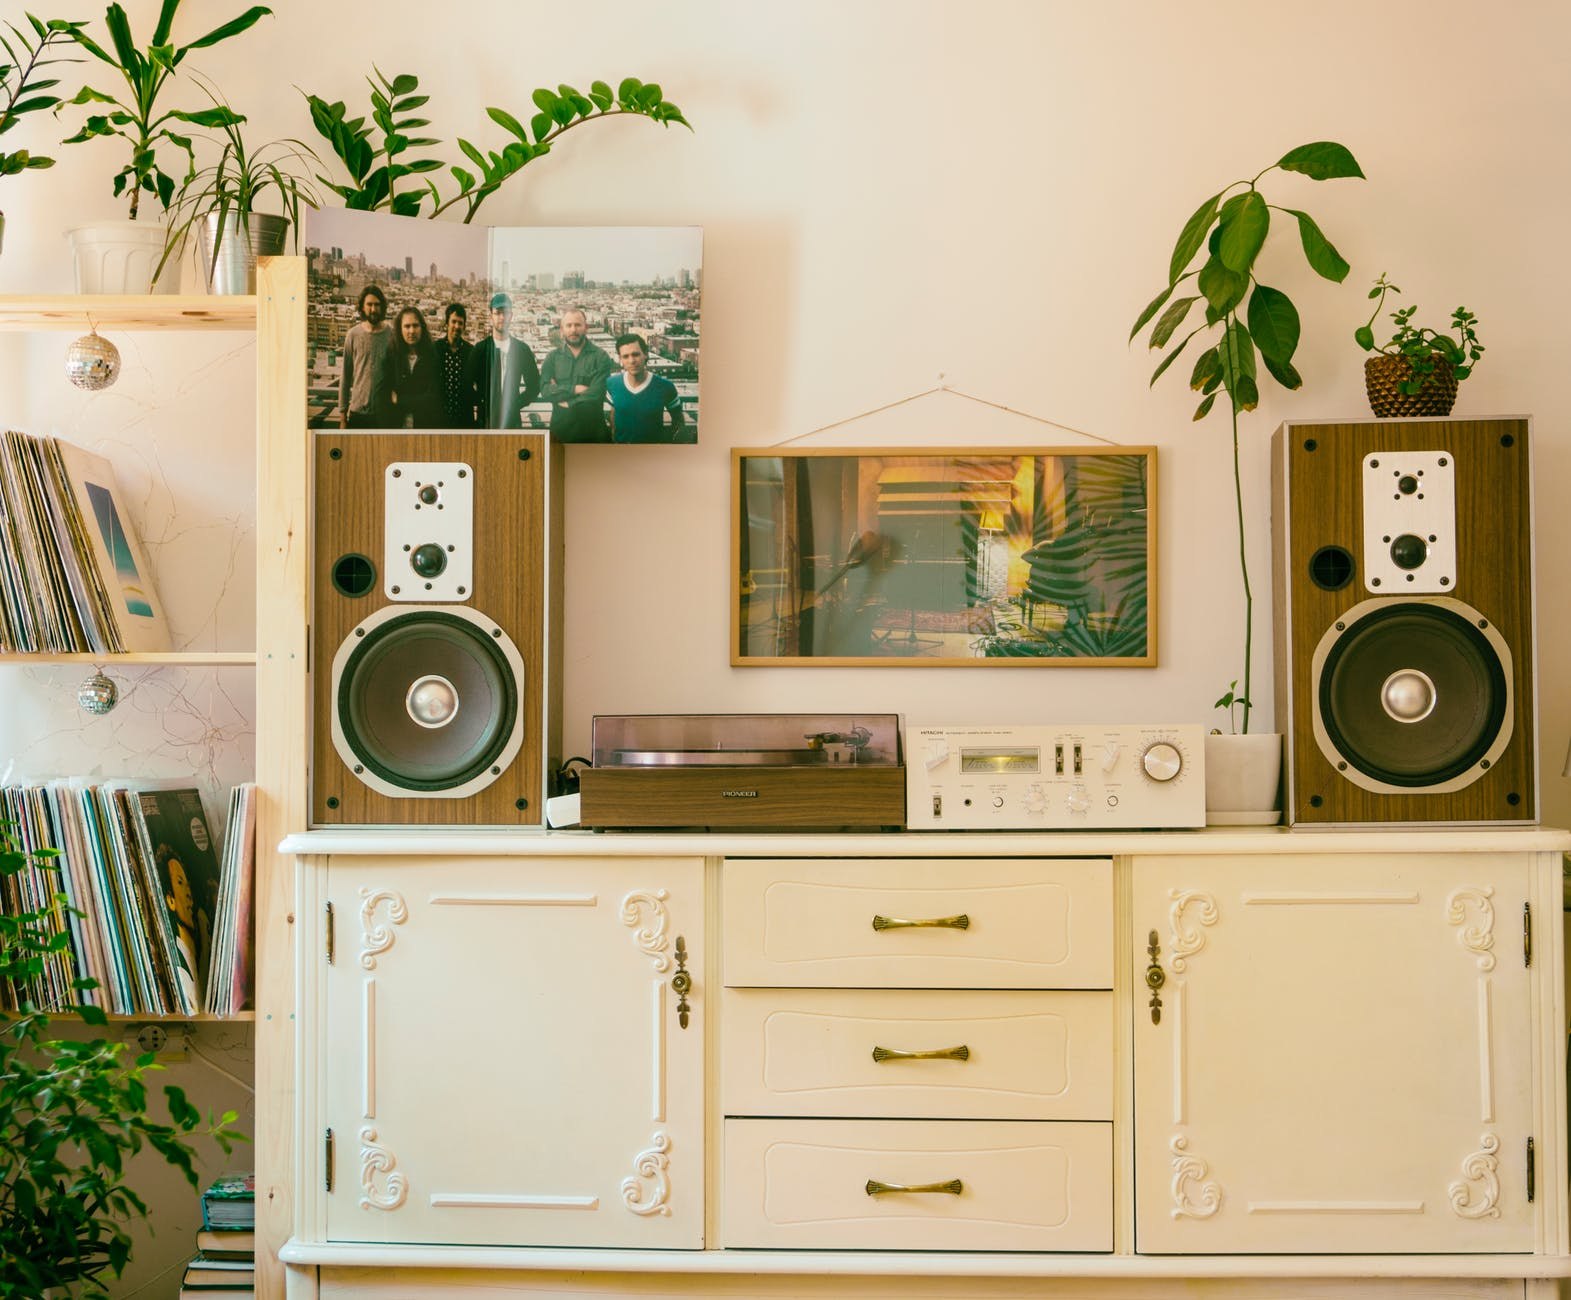 How to choose the ideal home sound system